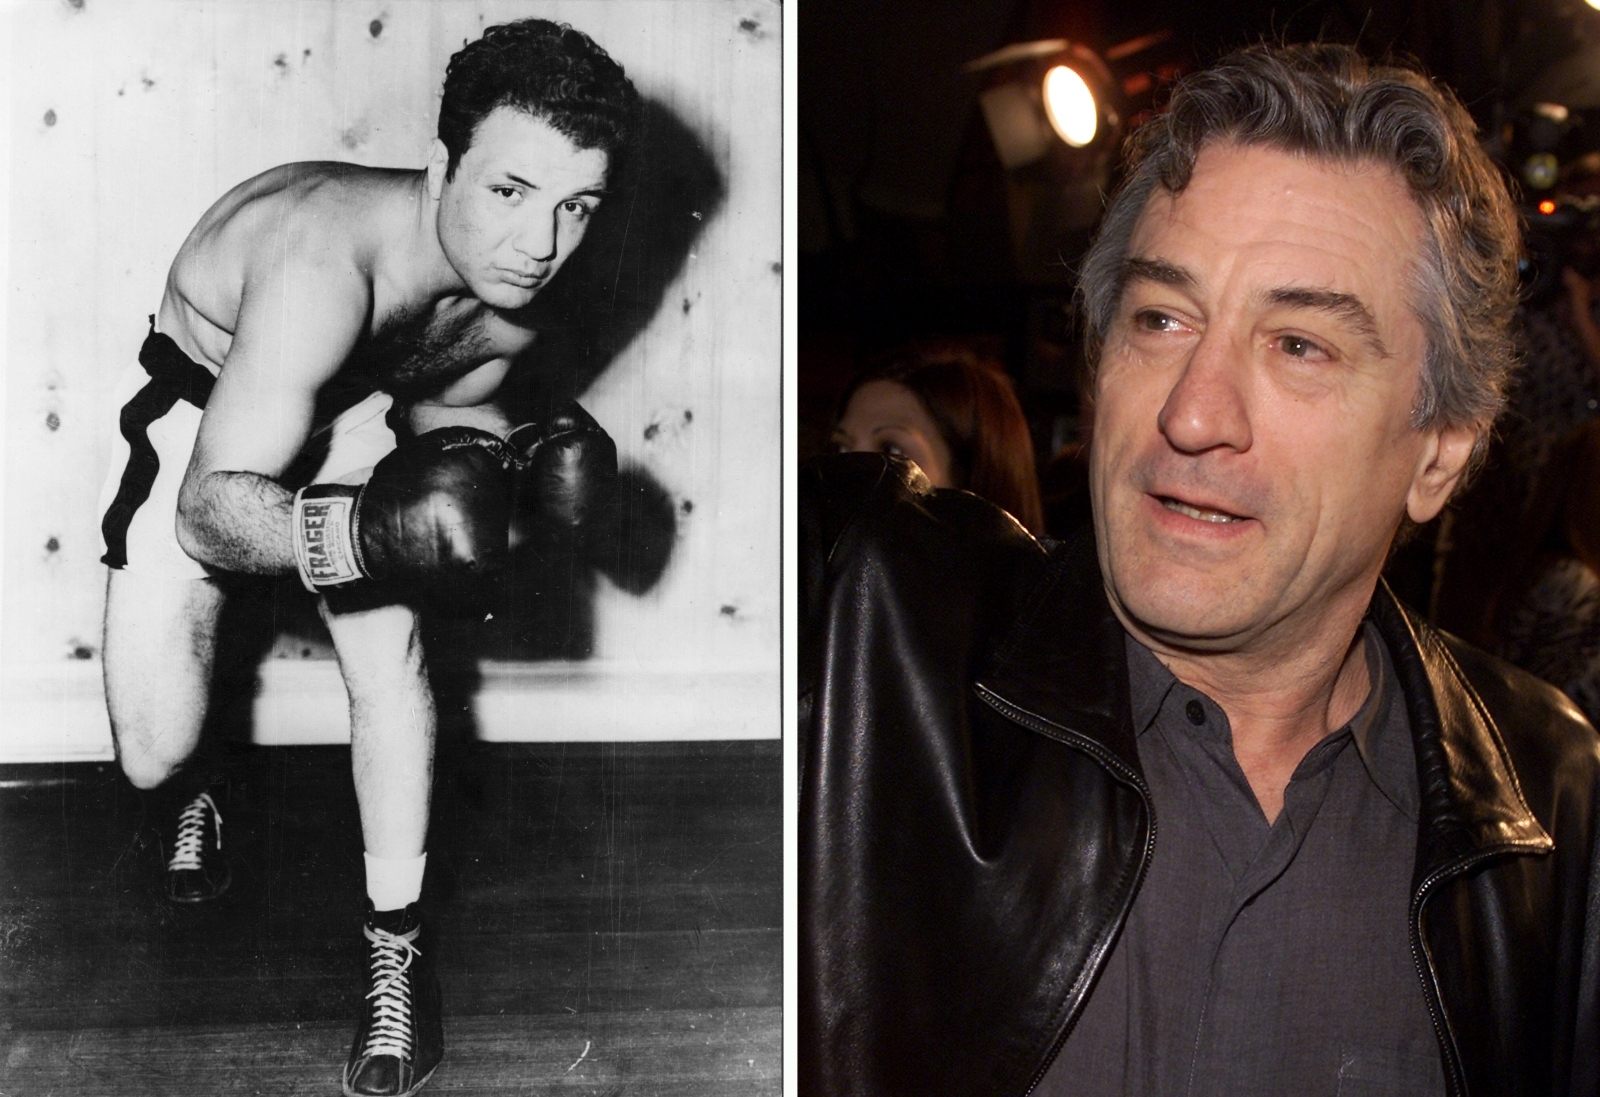 Boxing legend Jake LaMotta, the 'Raging Bull', dies aged 95